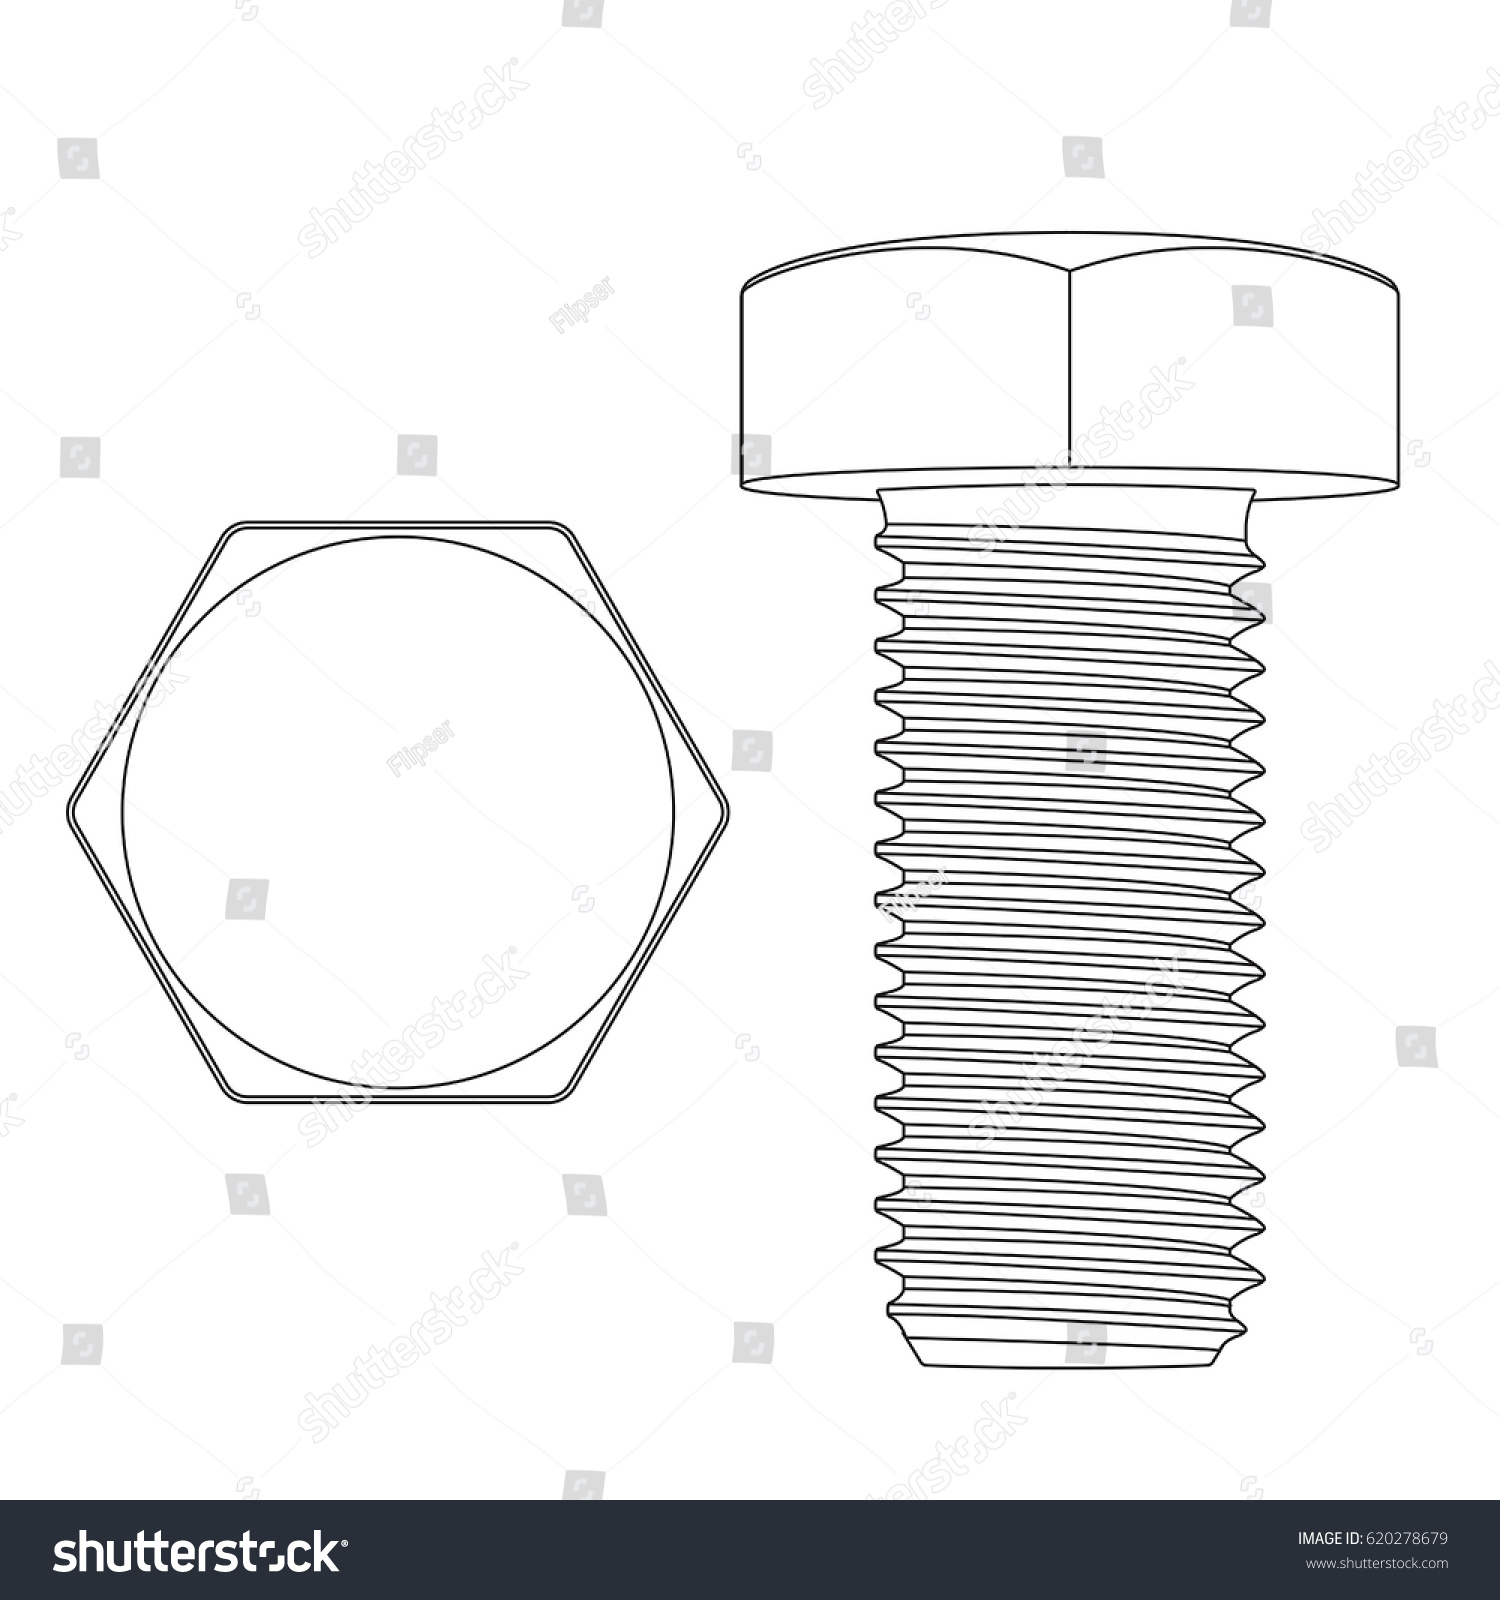 hight resolution of metal hex bolt white outline icon vector illustration isolated on white background